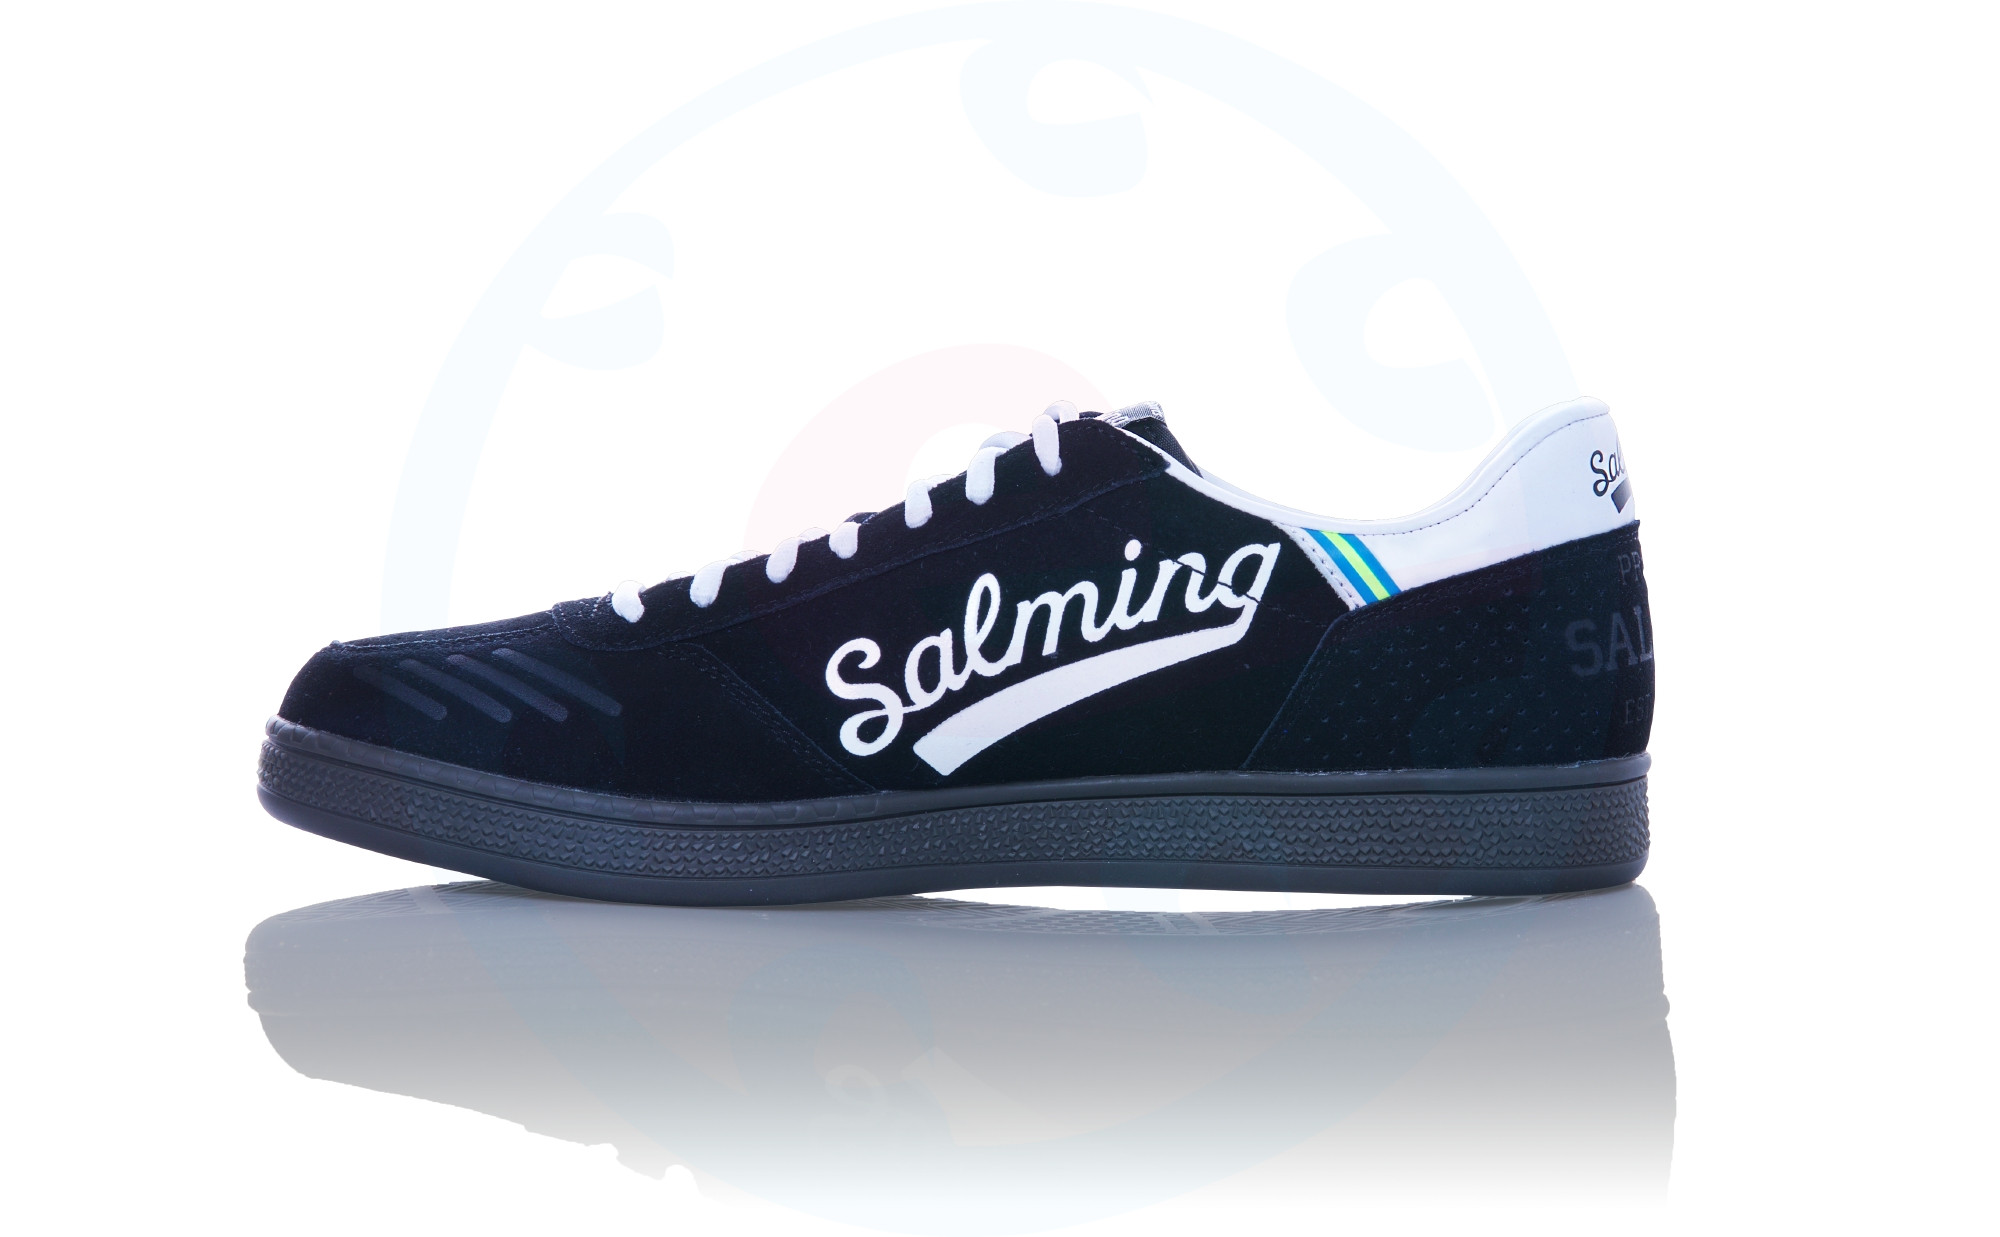 Indoor Shoes Salming Leather Blackwhite Ninetyone YvfIb7gy6